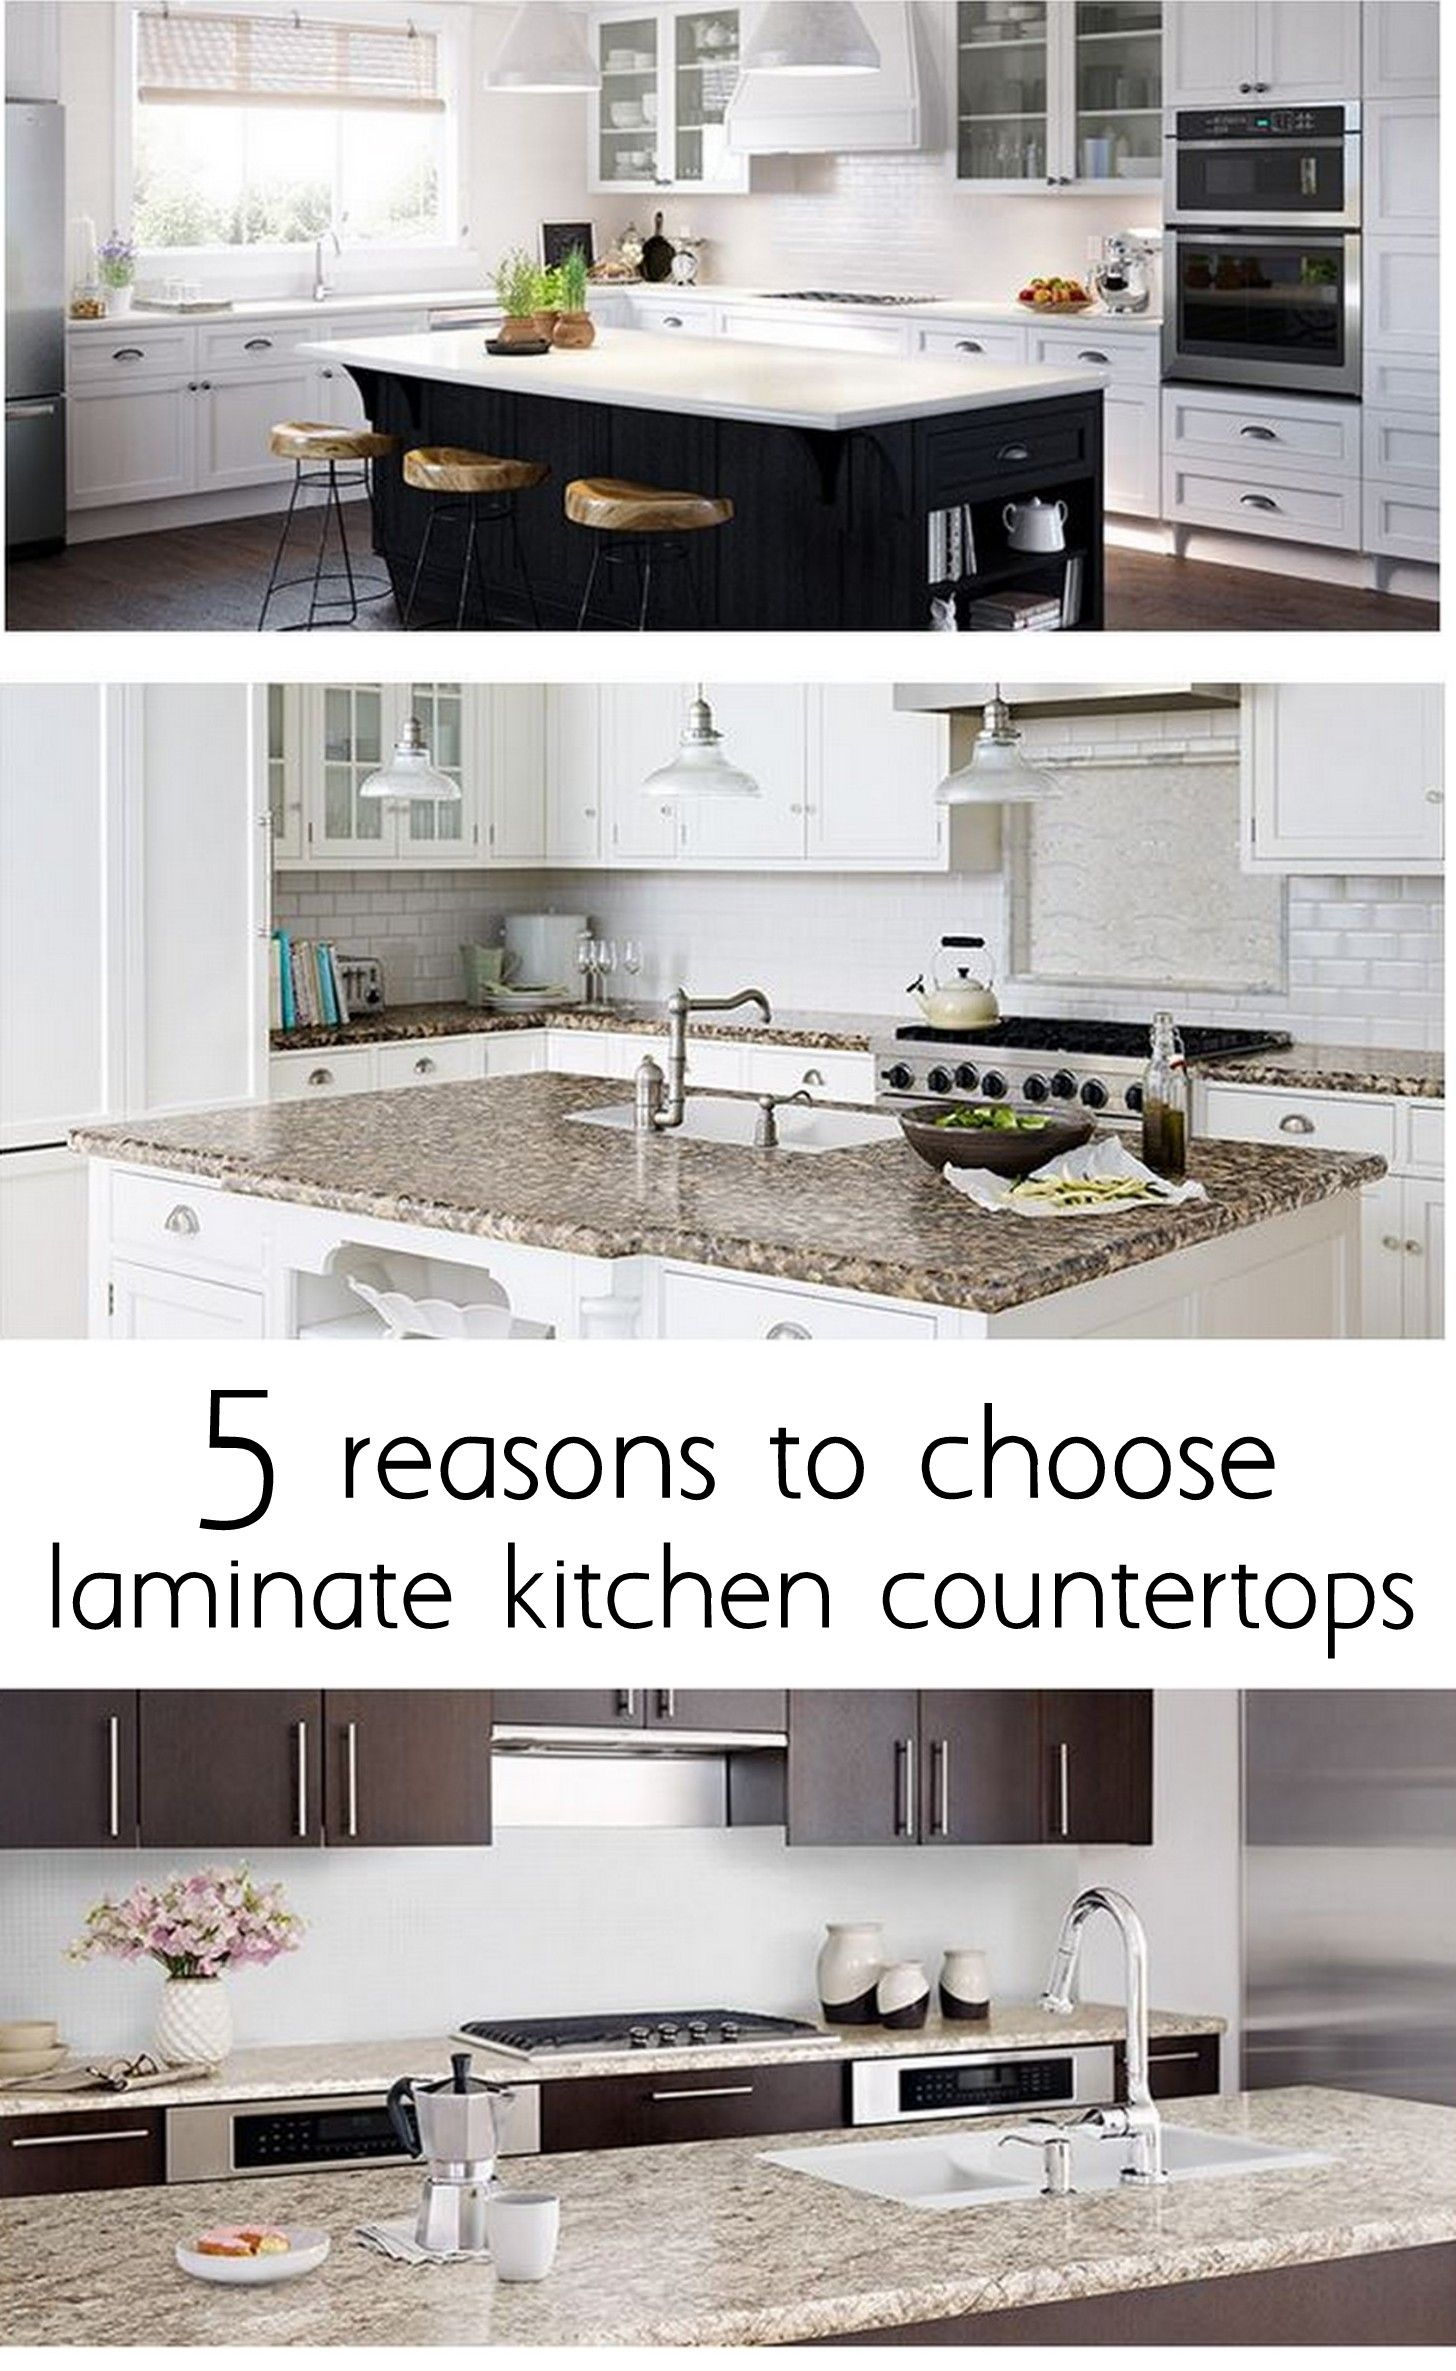 Laminate Kitchen Backsplash 5 Reasons To Choose Laminate Kitchen Countertops Cs Blog